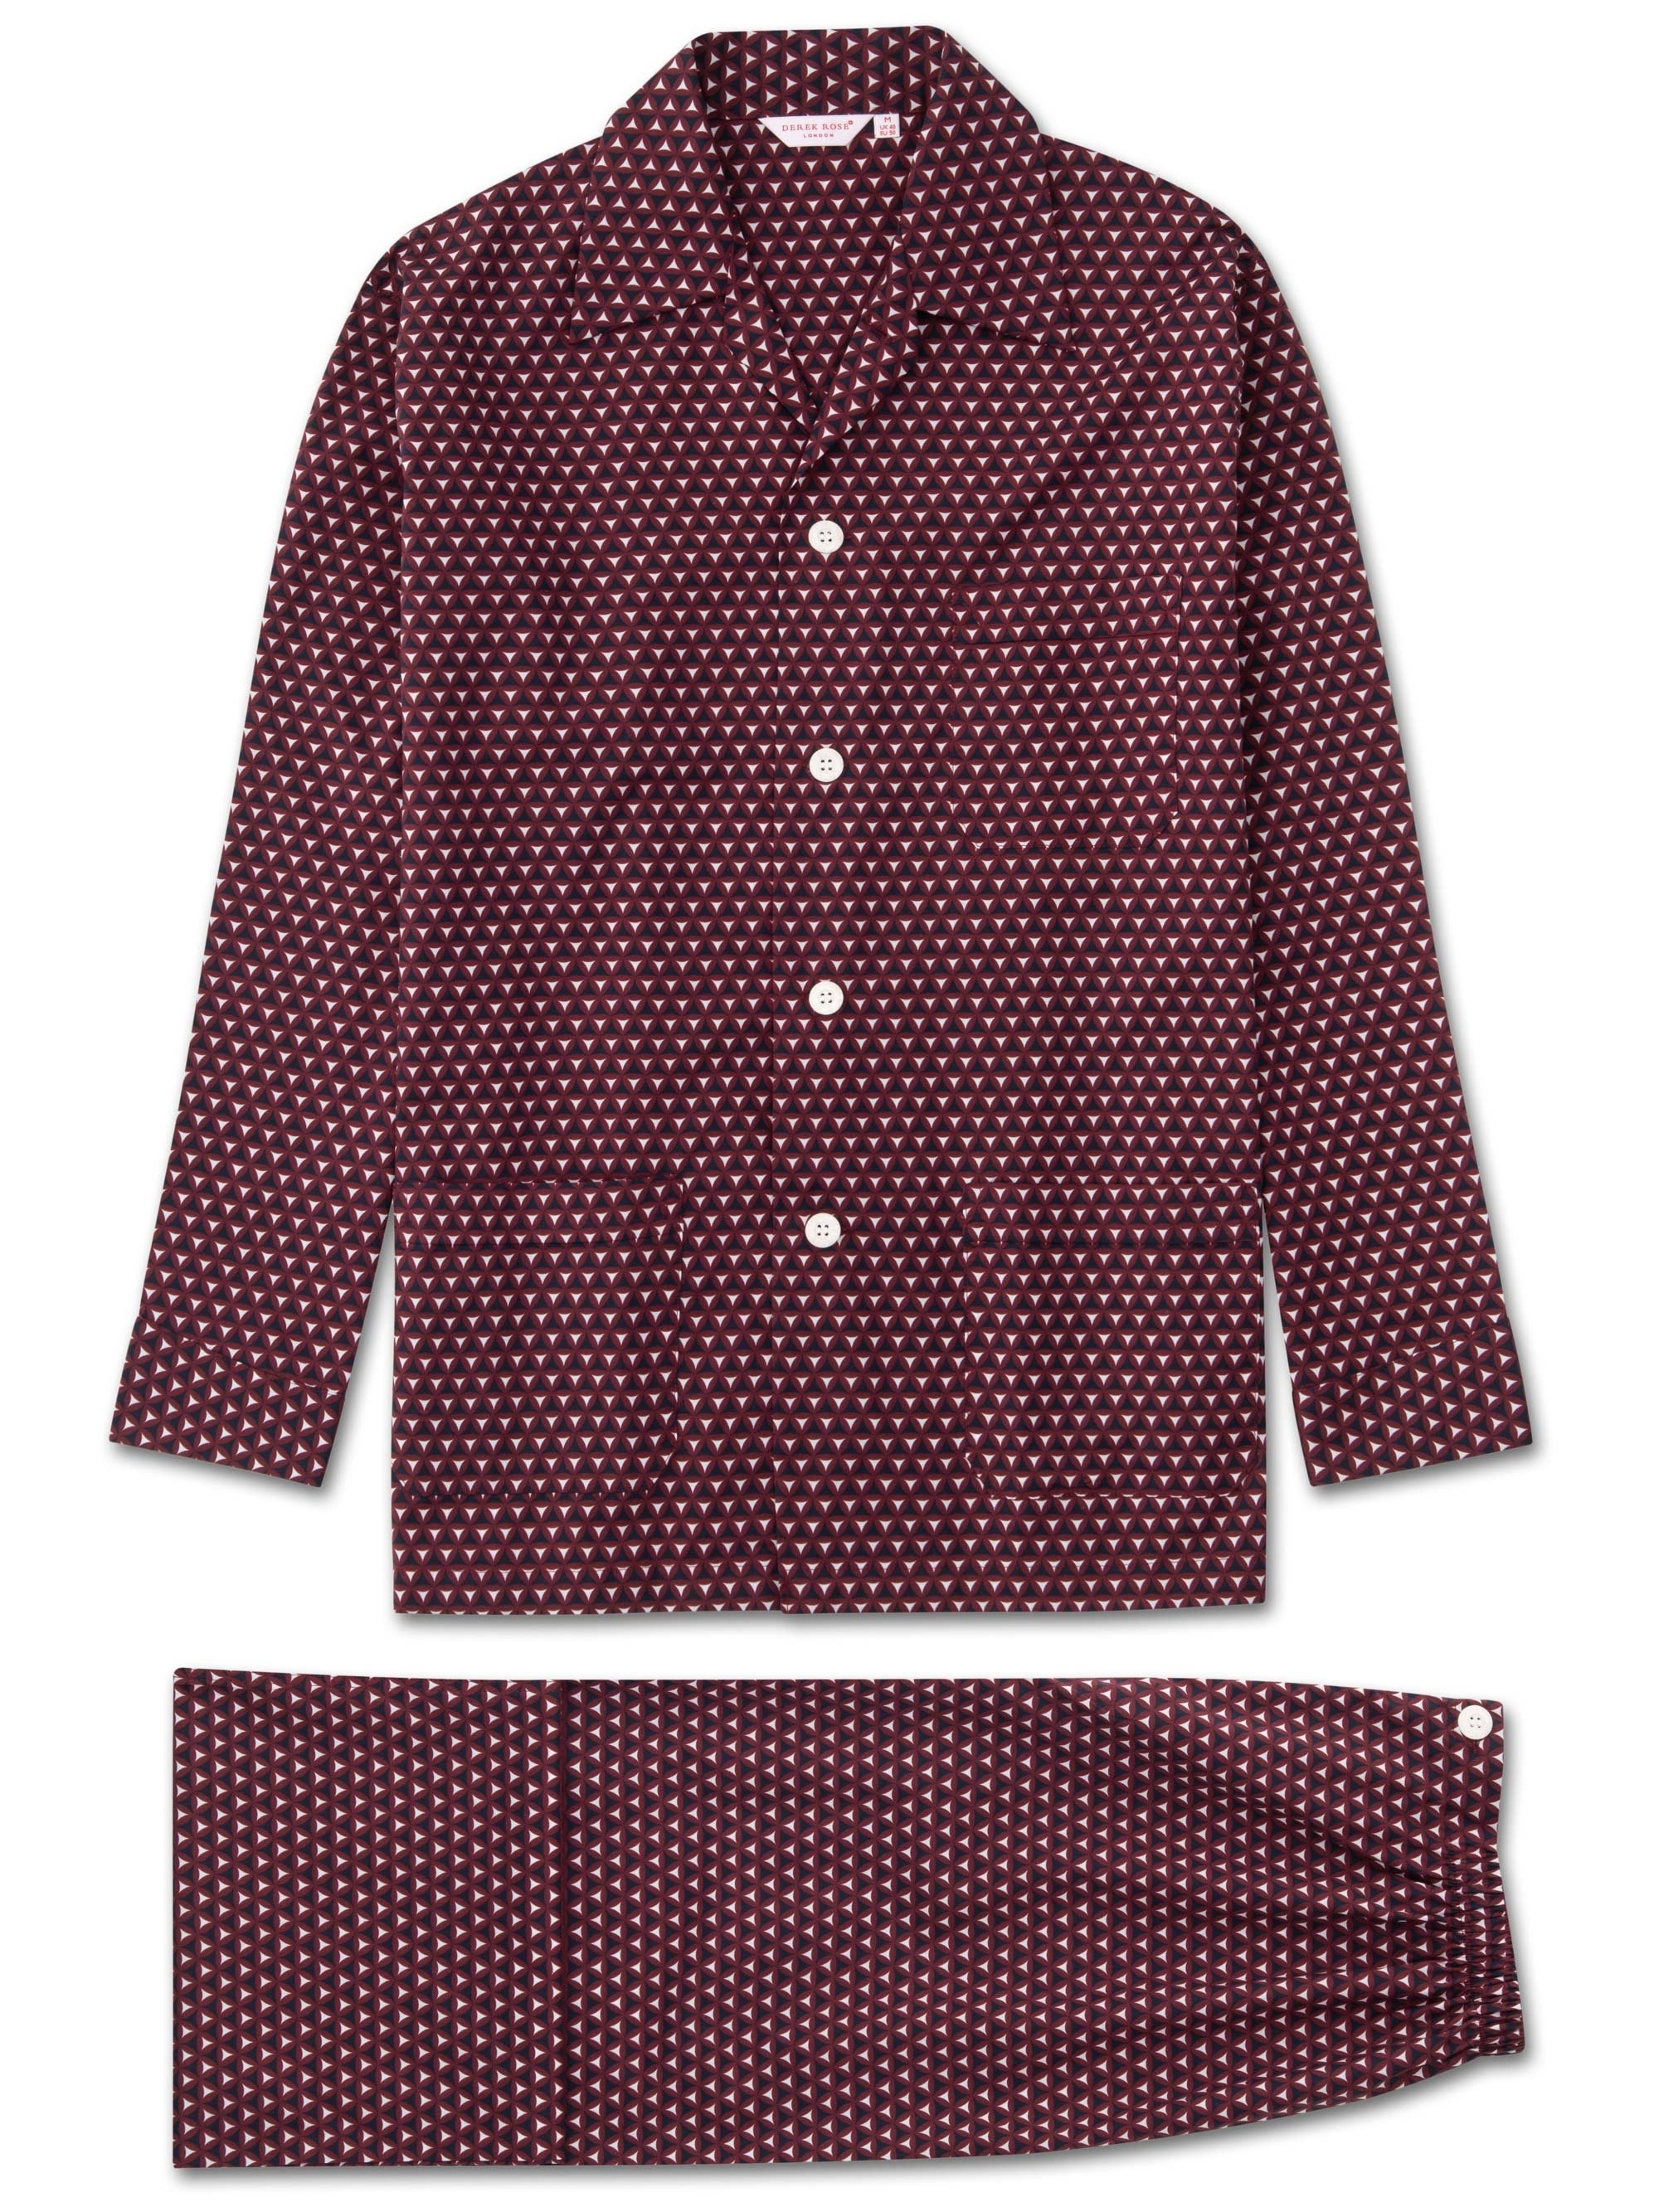 Men's Classic Fit Pyjamas Ledbury 26 Cotton Batiste Burgundy